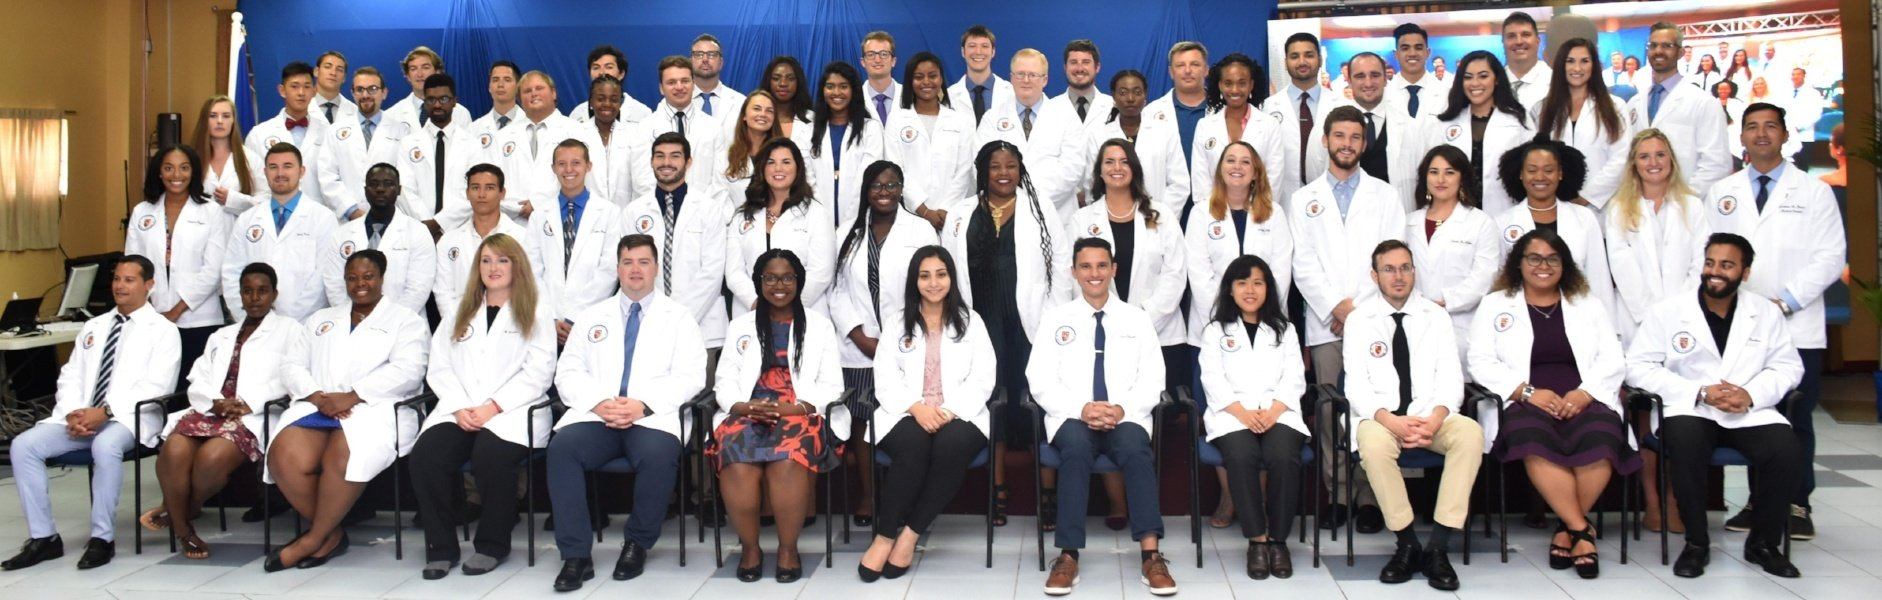 Trinity Holds 10th September White Coat Ceremony, Commemorates a Decade of Medical Education